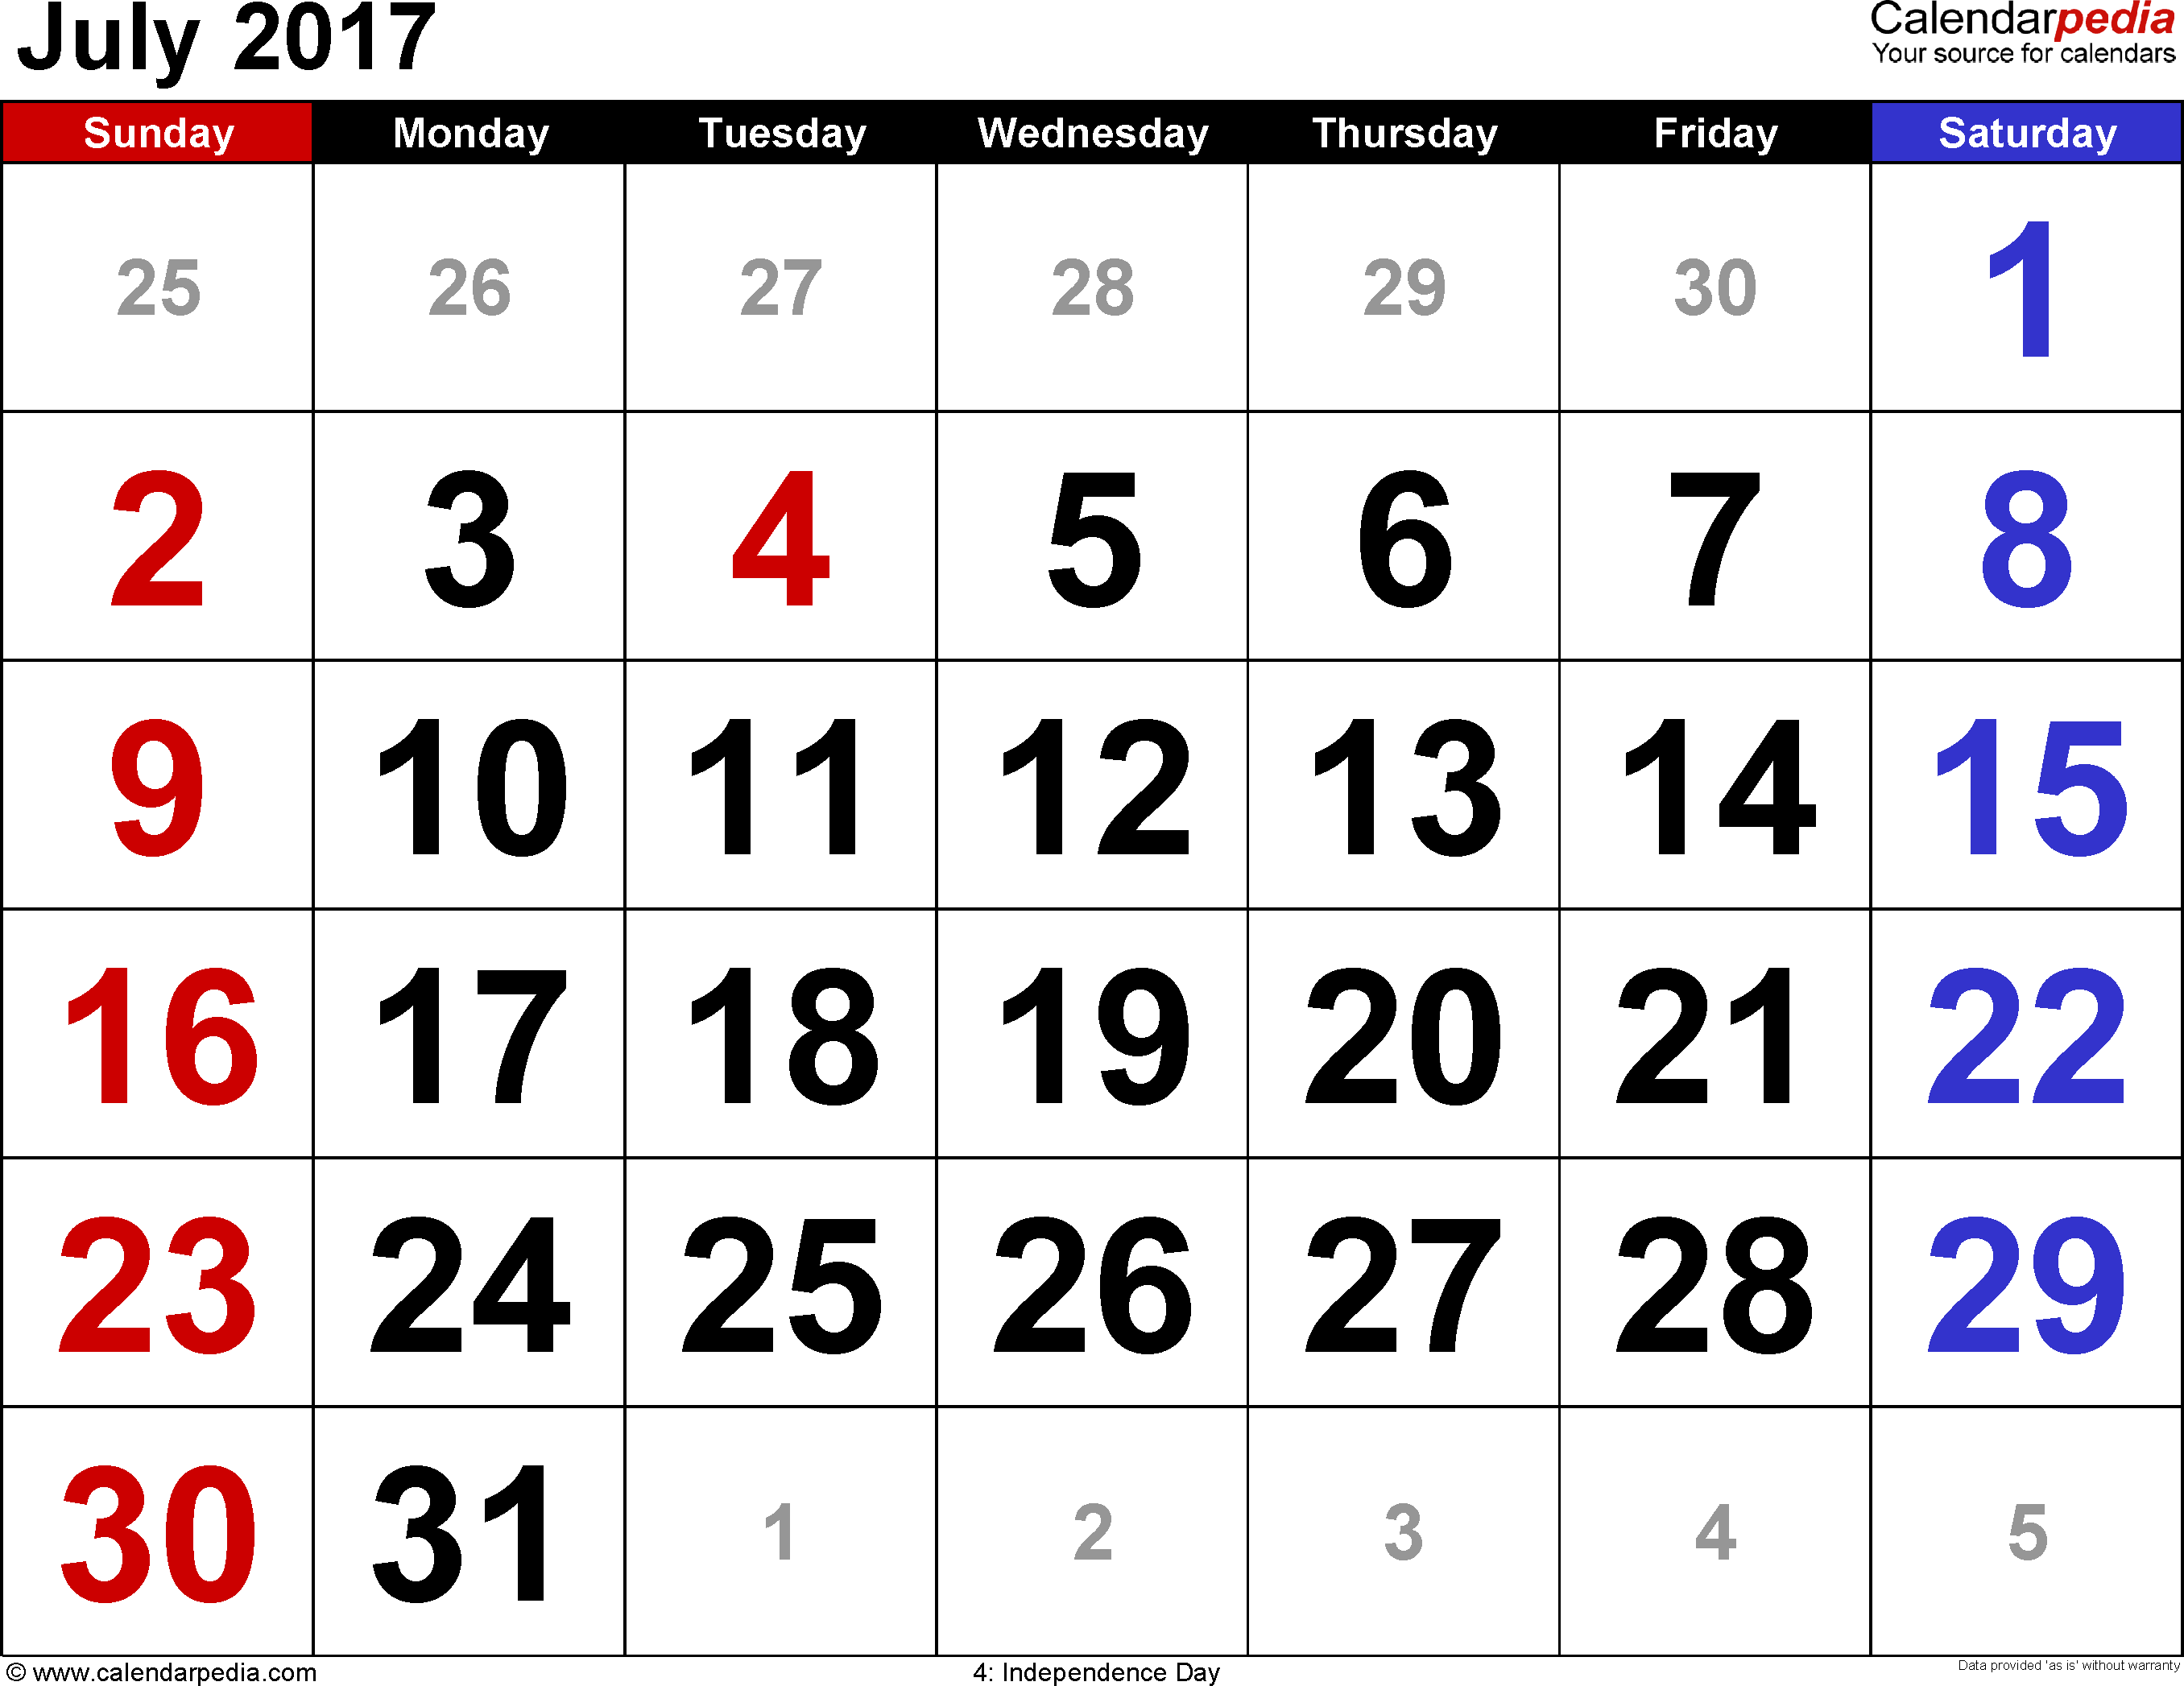 July 2017 Calendars for Word, Excel & PDF